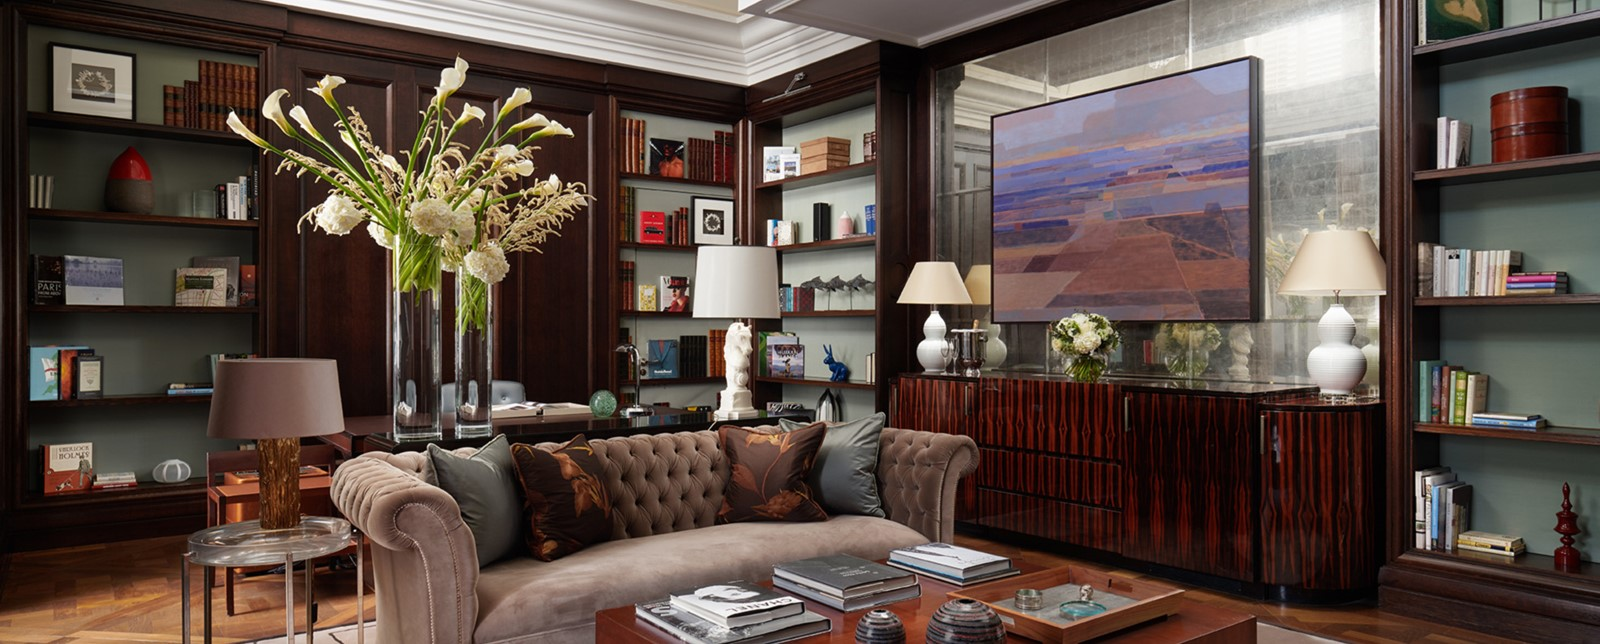 corinthia london writers penthouse